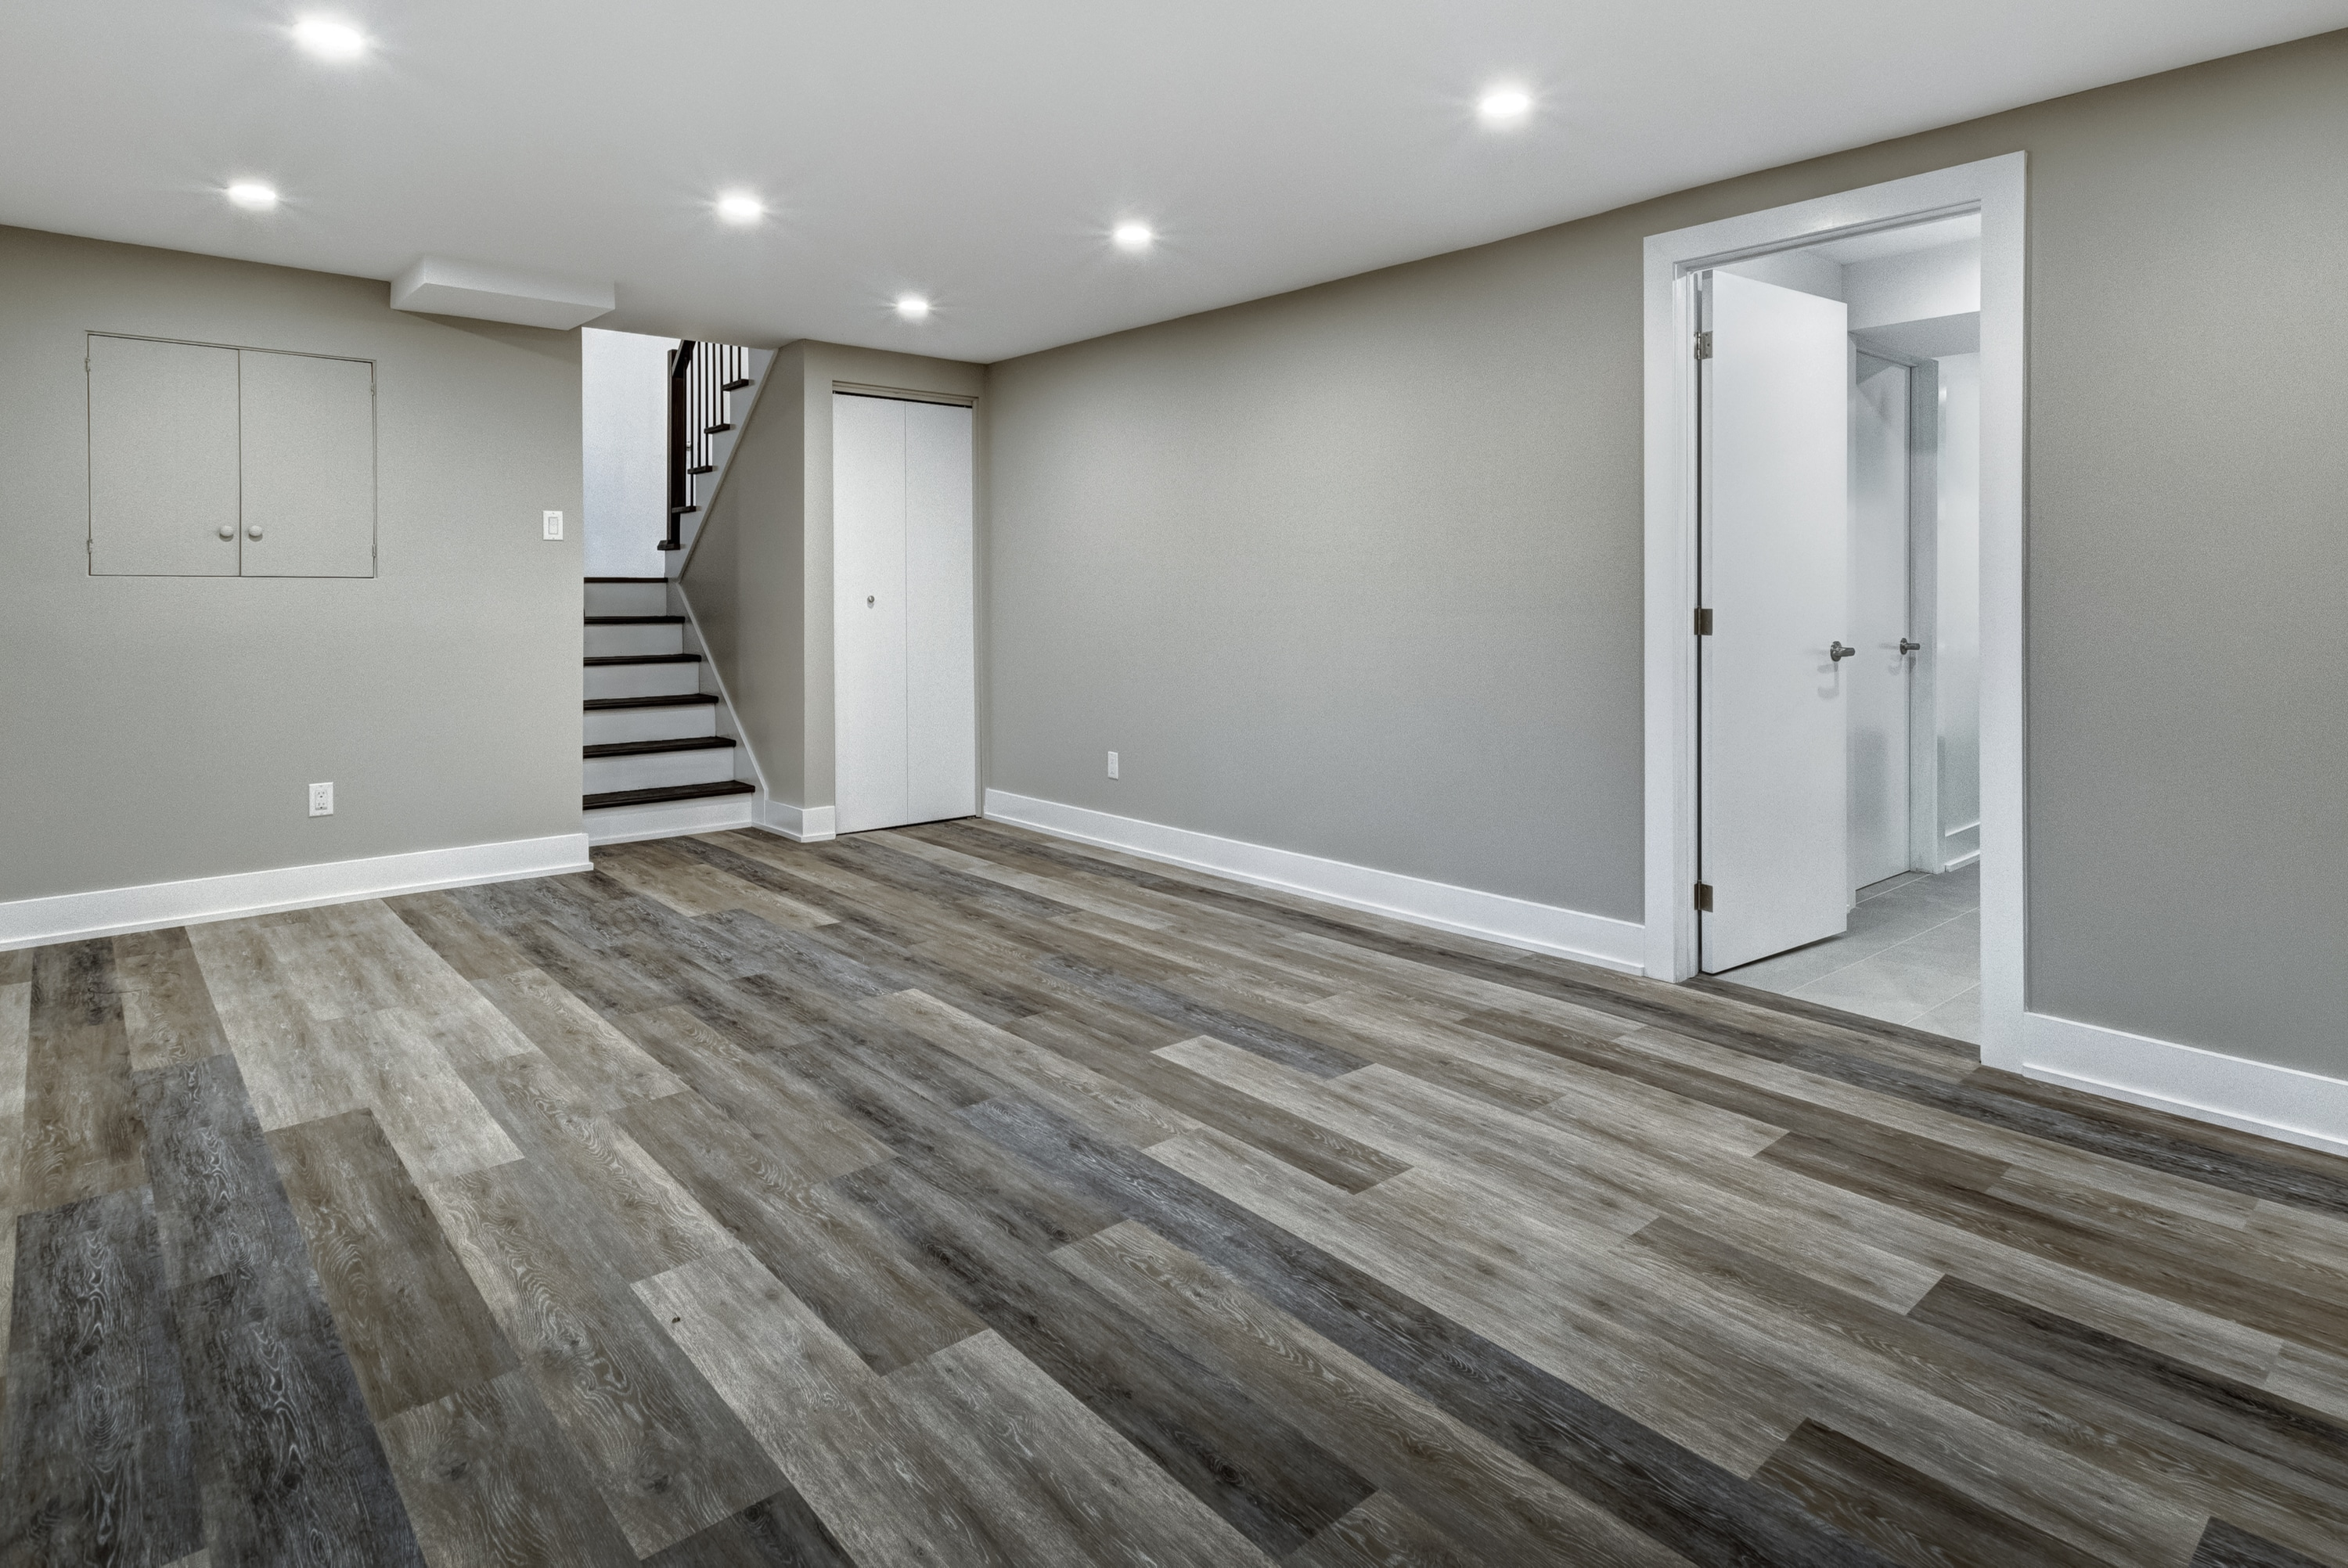 How You Can Save Extra Money When Renovating a Basement